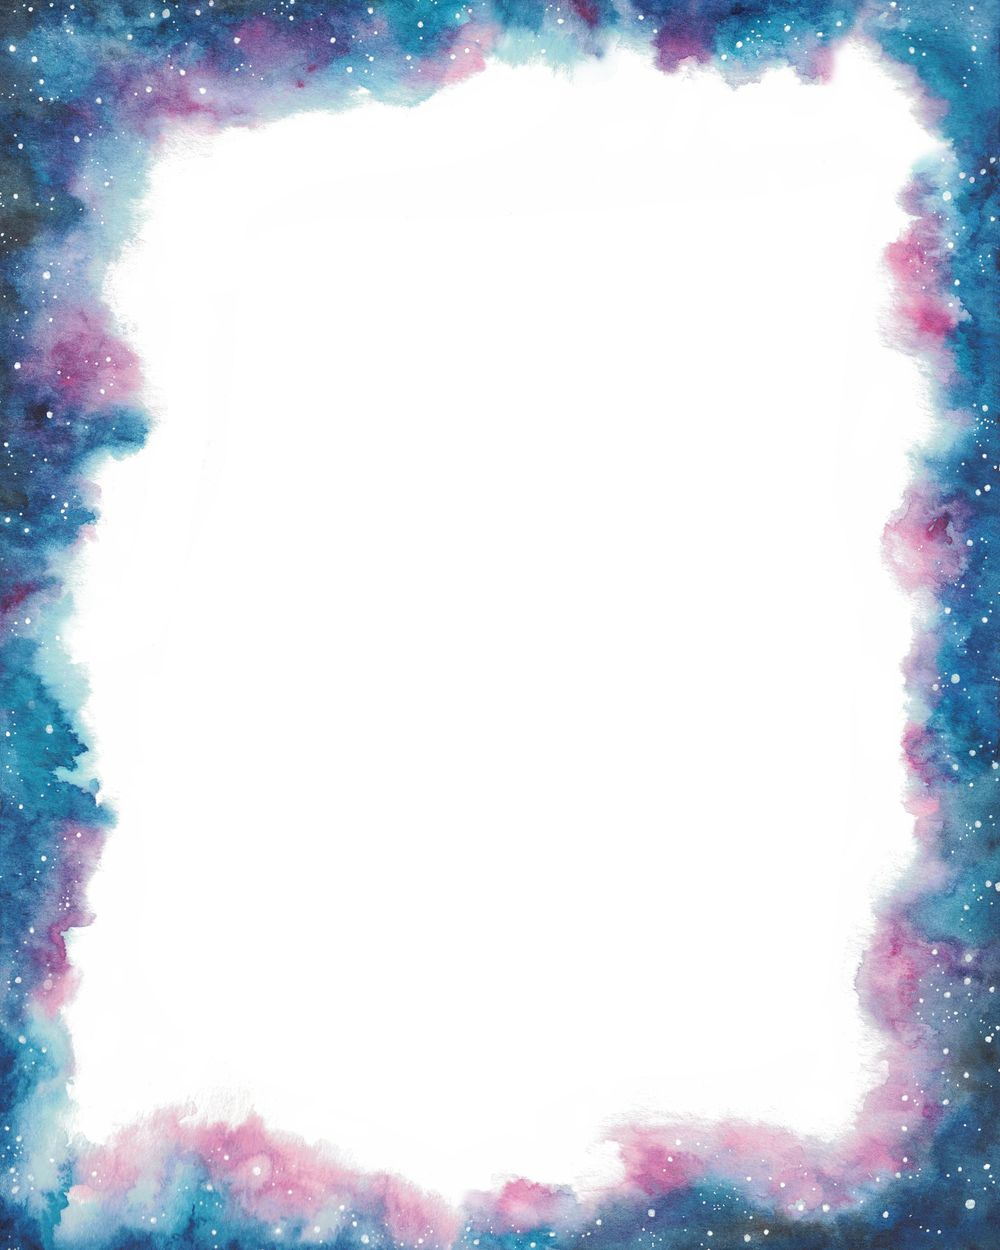 How To Paint a Watercolor Galaxy Border - image 2 - student project